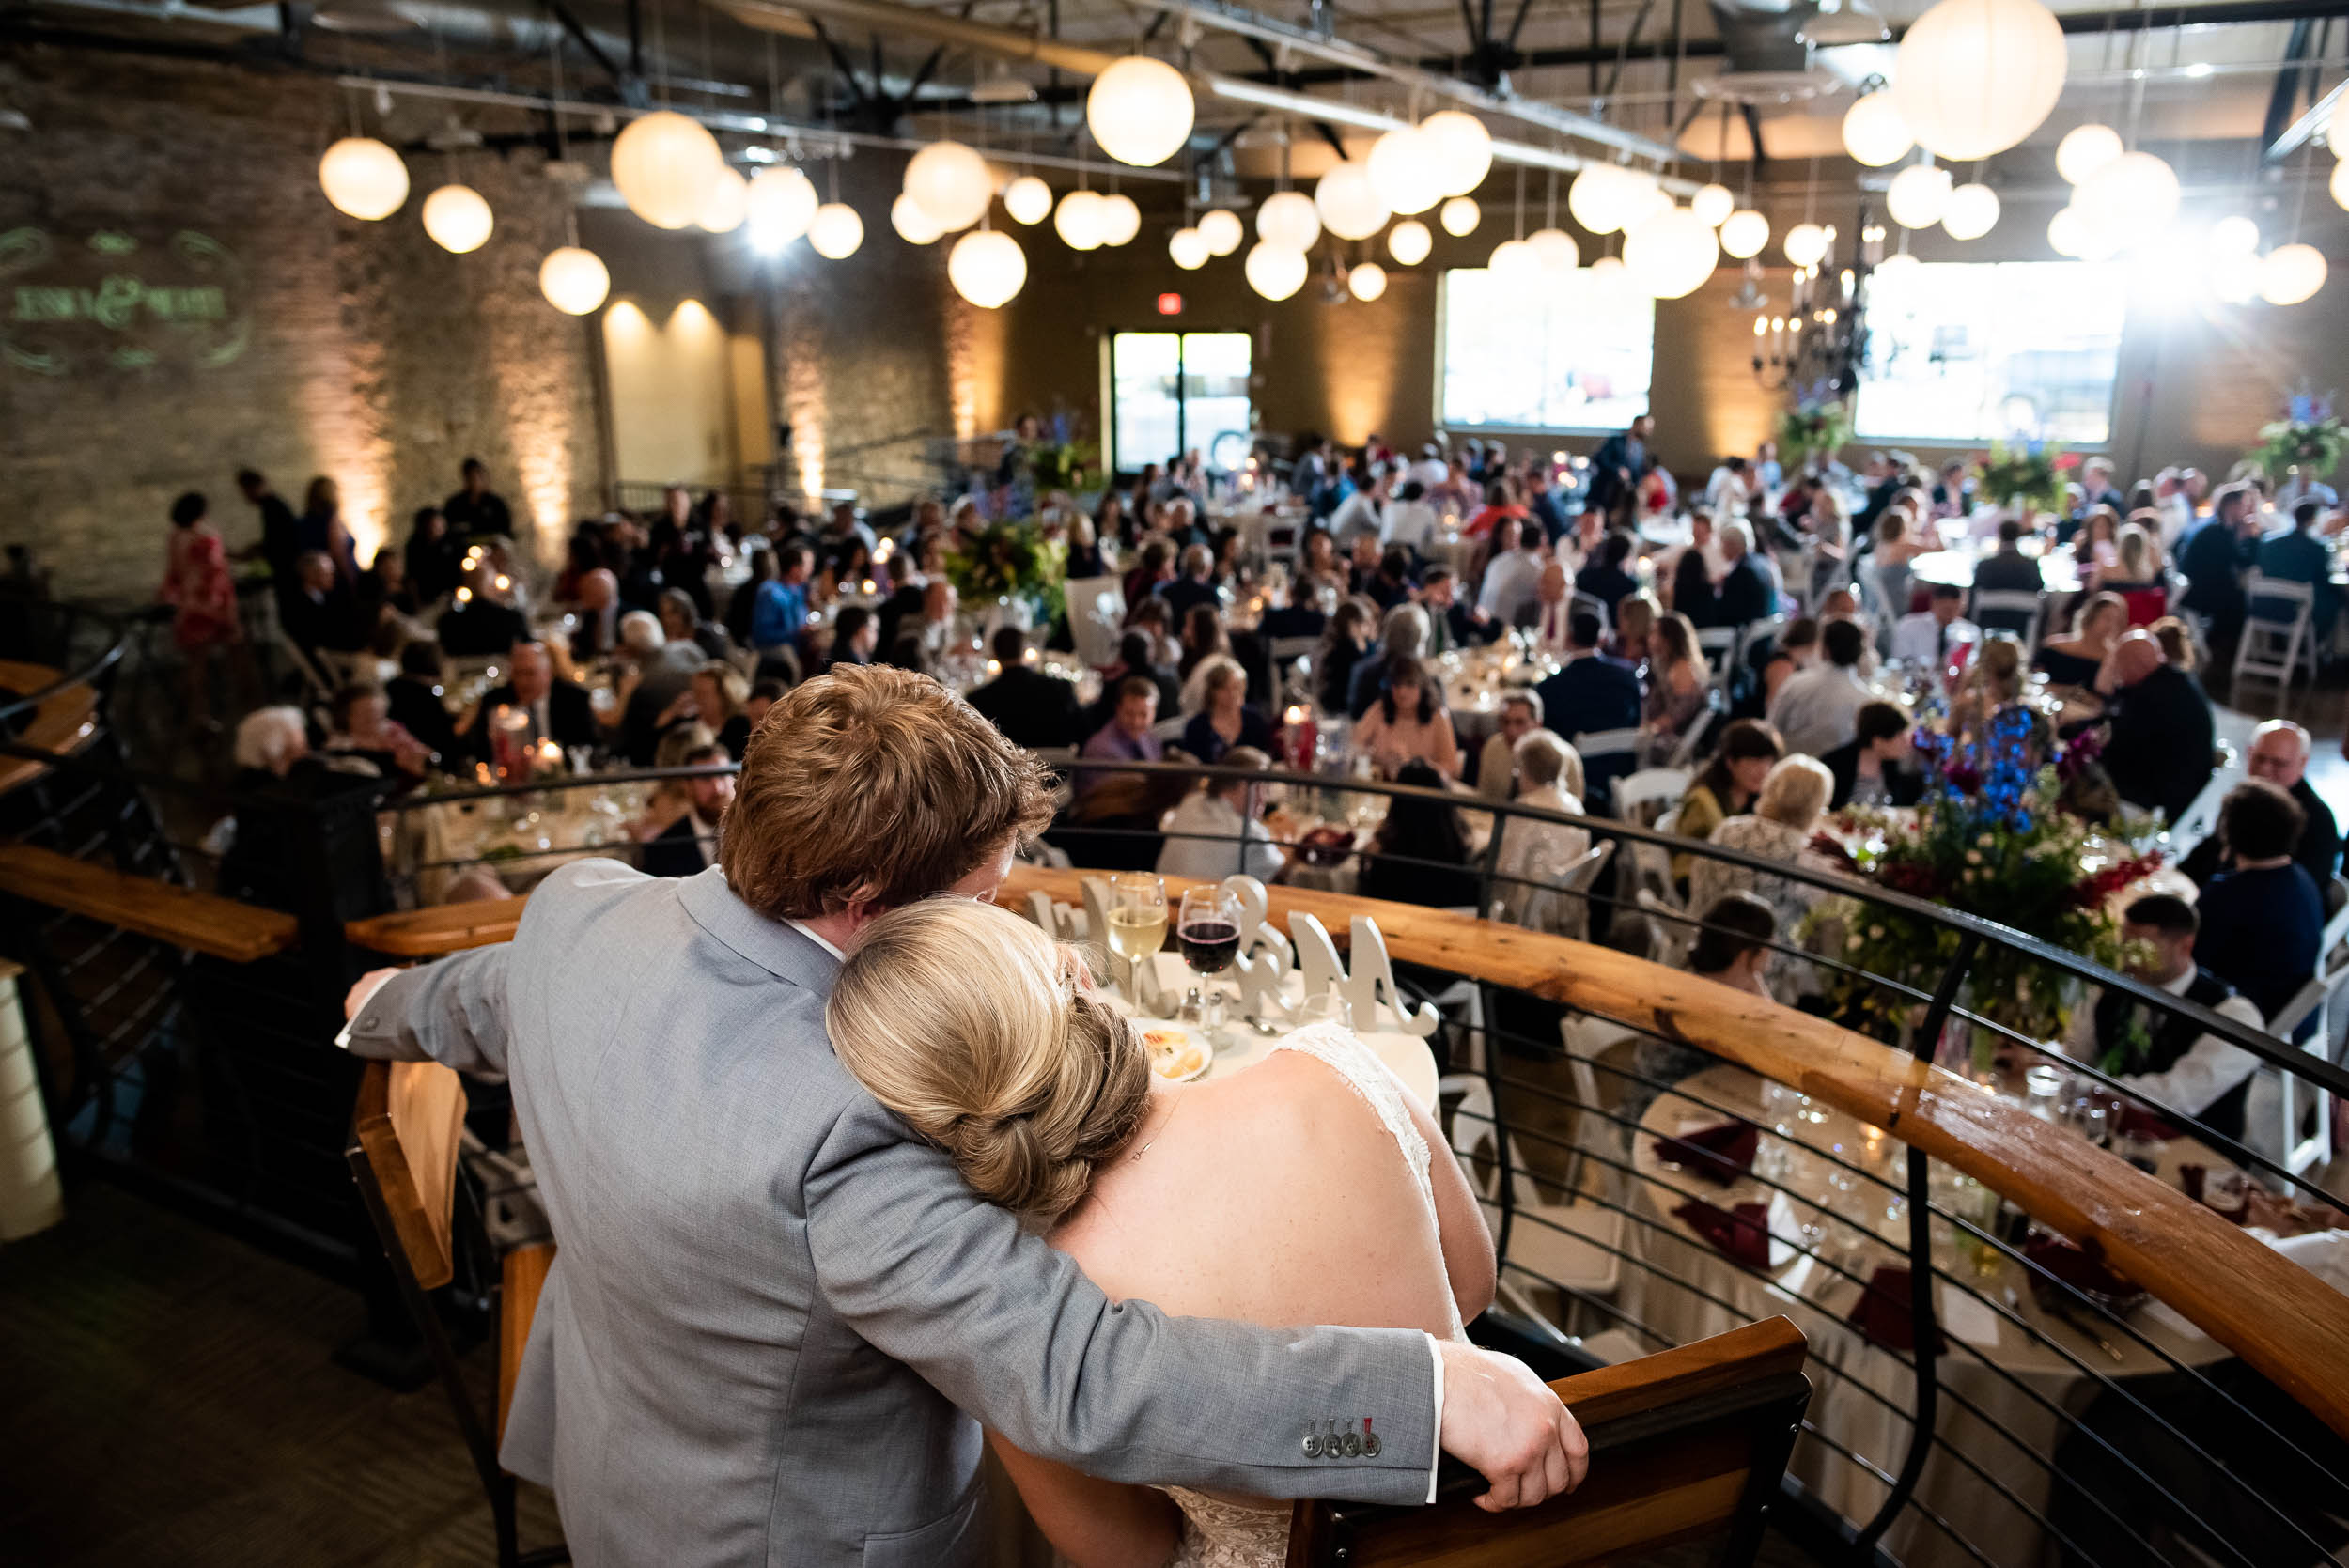 Brewhouse wedding venue: Modern industrial Chicago wedding inside Prairie Street Brewhouse captured by J. Brown Photography. Find more wedding ideas at jbrownphotography.com!